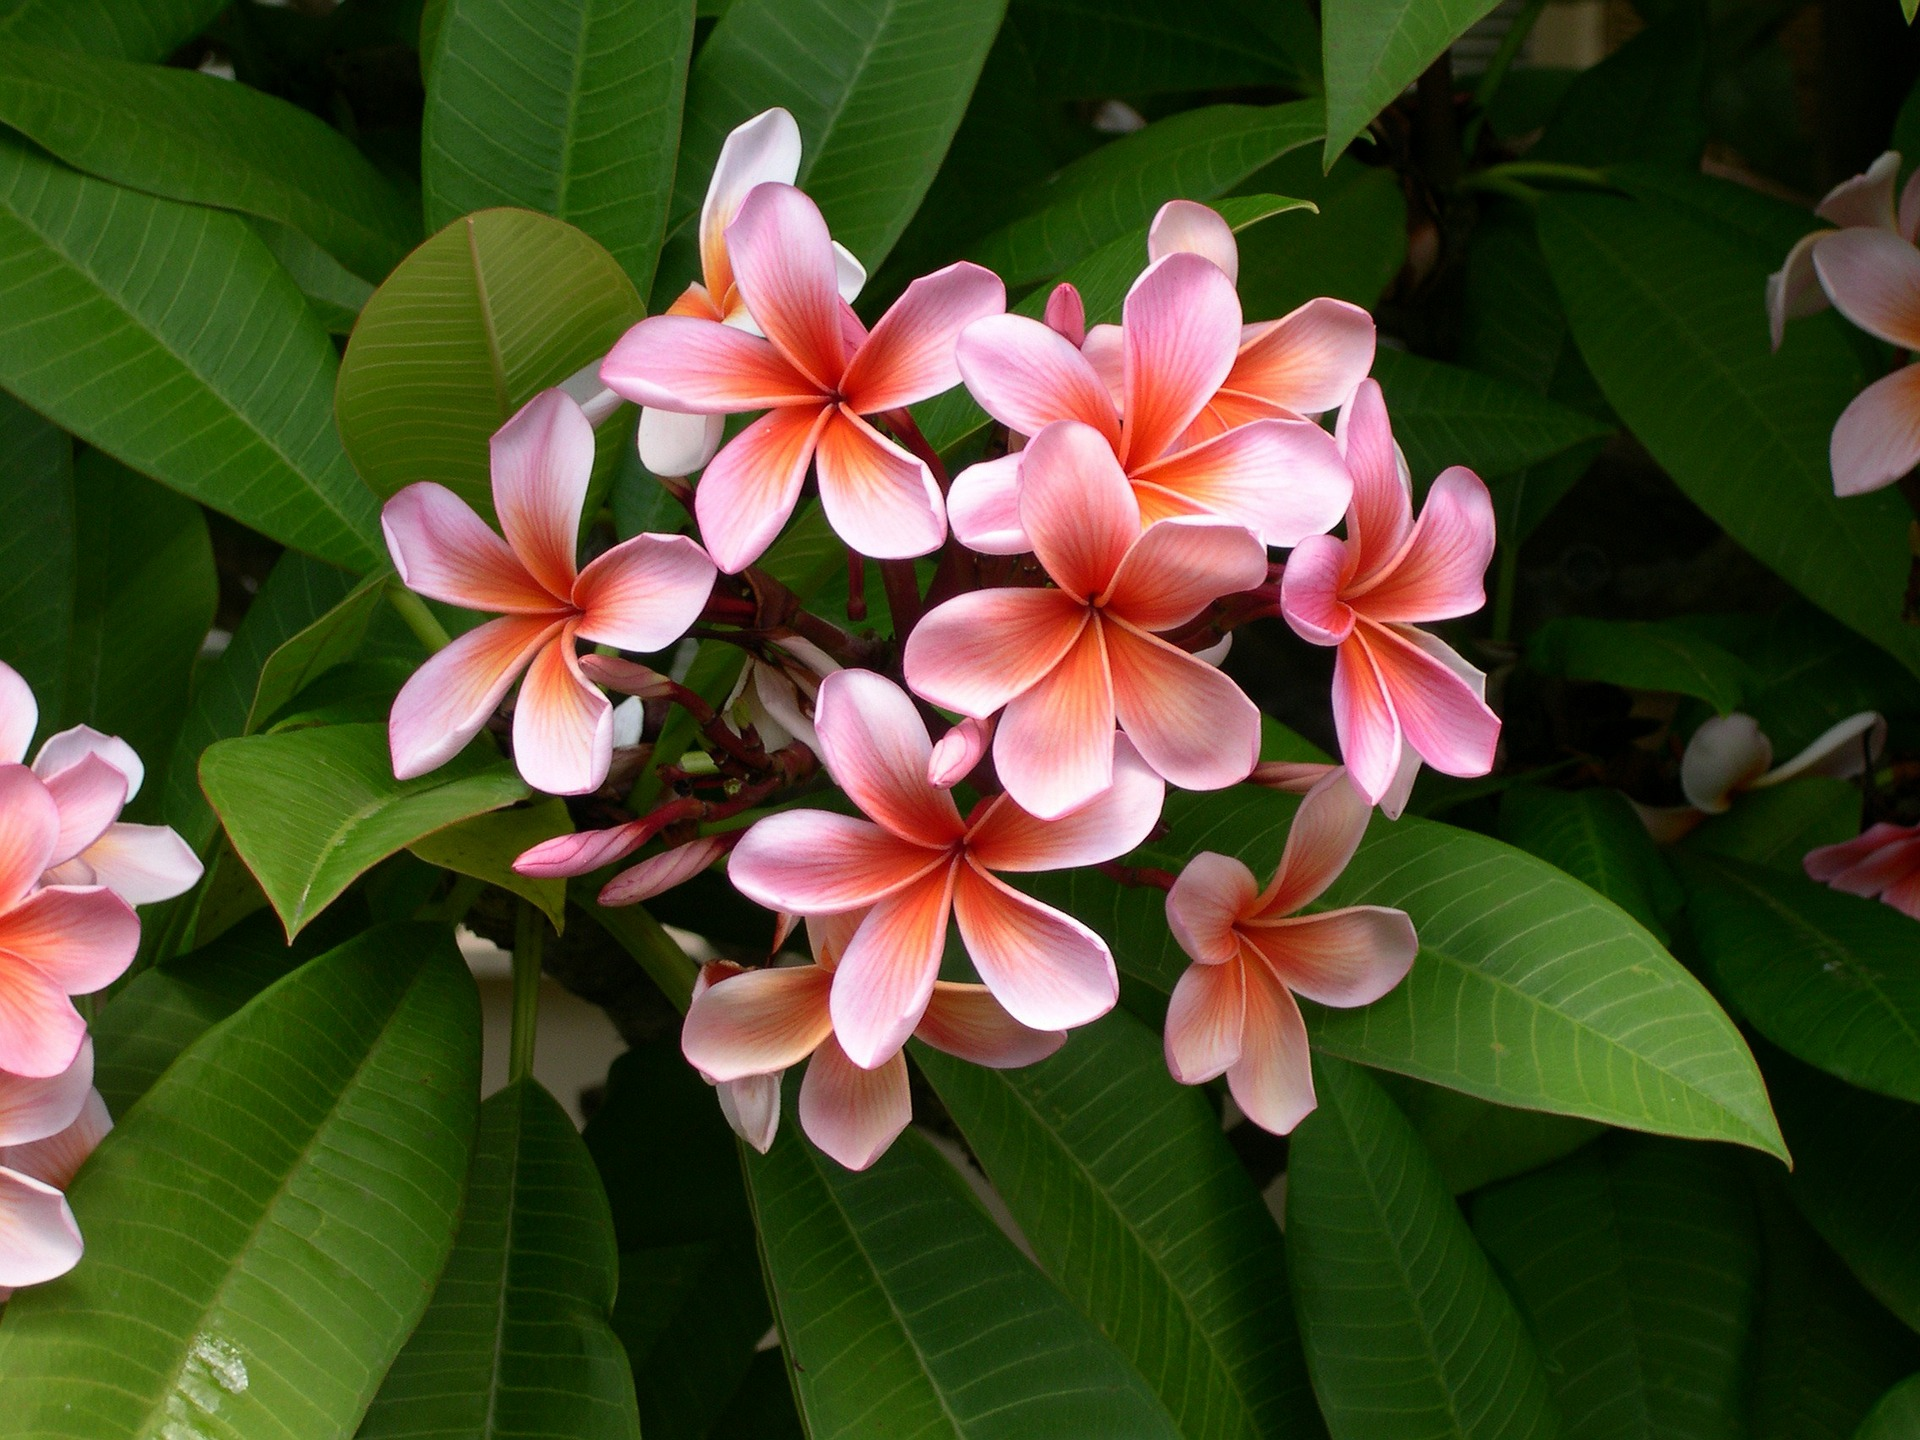 fragrant pink and white plumeria flower